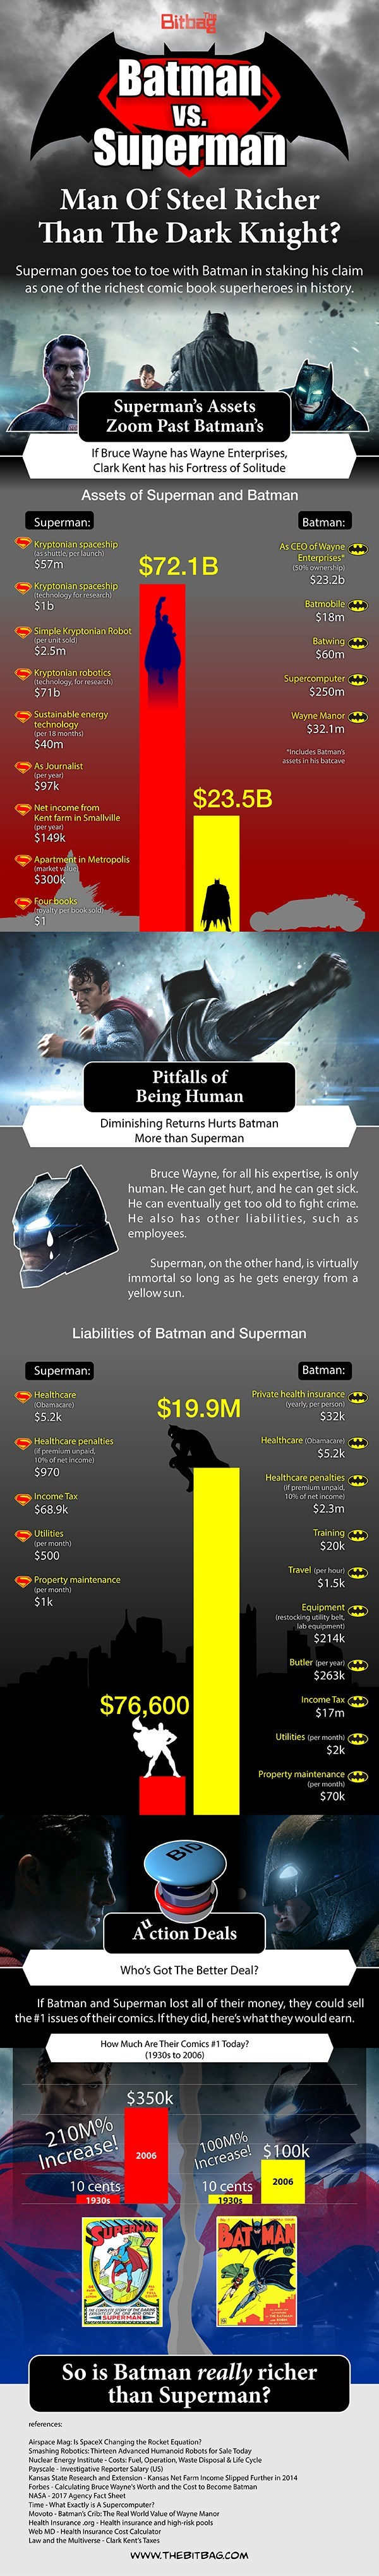 infographic batman superman money Apparently Superman Has More Money Than Batman?